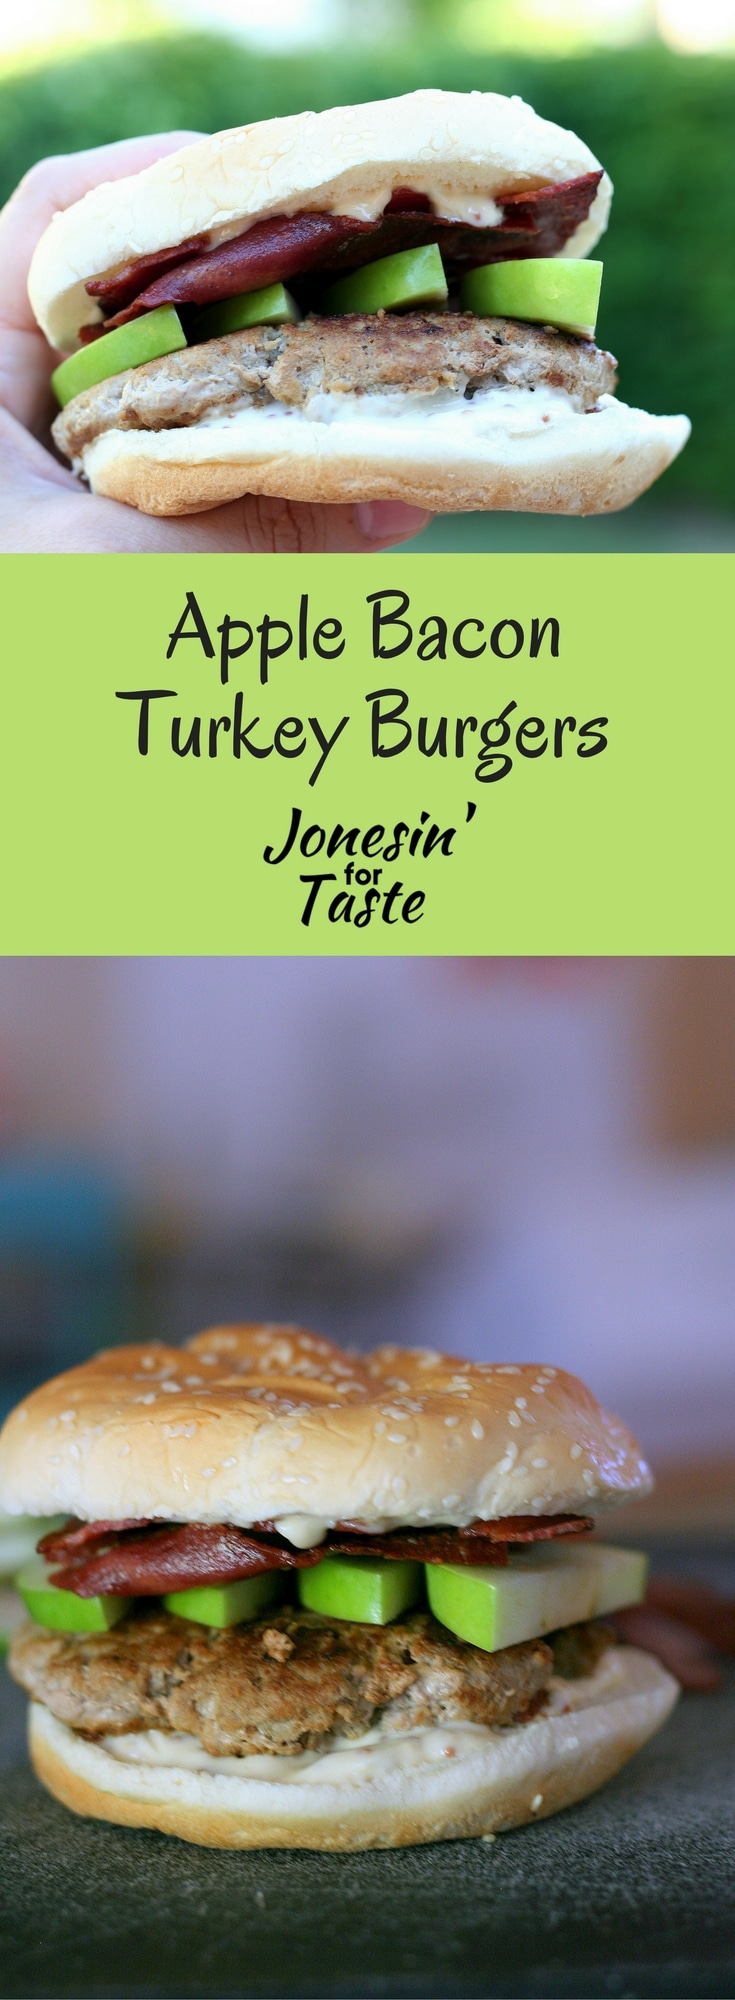 Apple Bacon Turkey burgers are a lighter option made with ground turkey and topped with turkey bacon, green apple slices, and a honey mustard spread. #apples #burgers